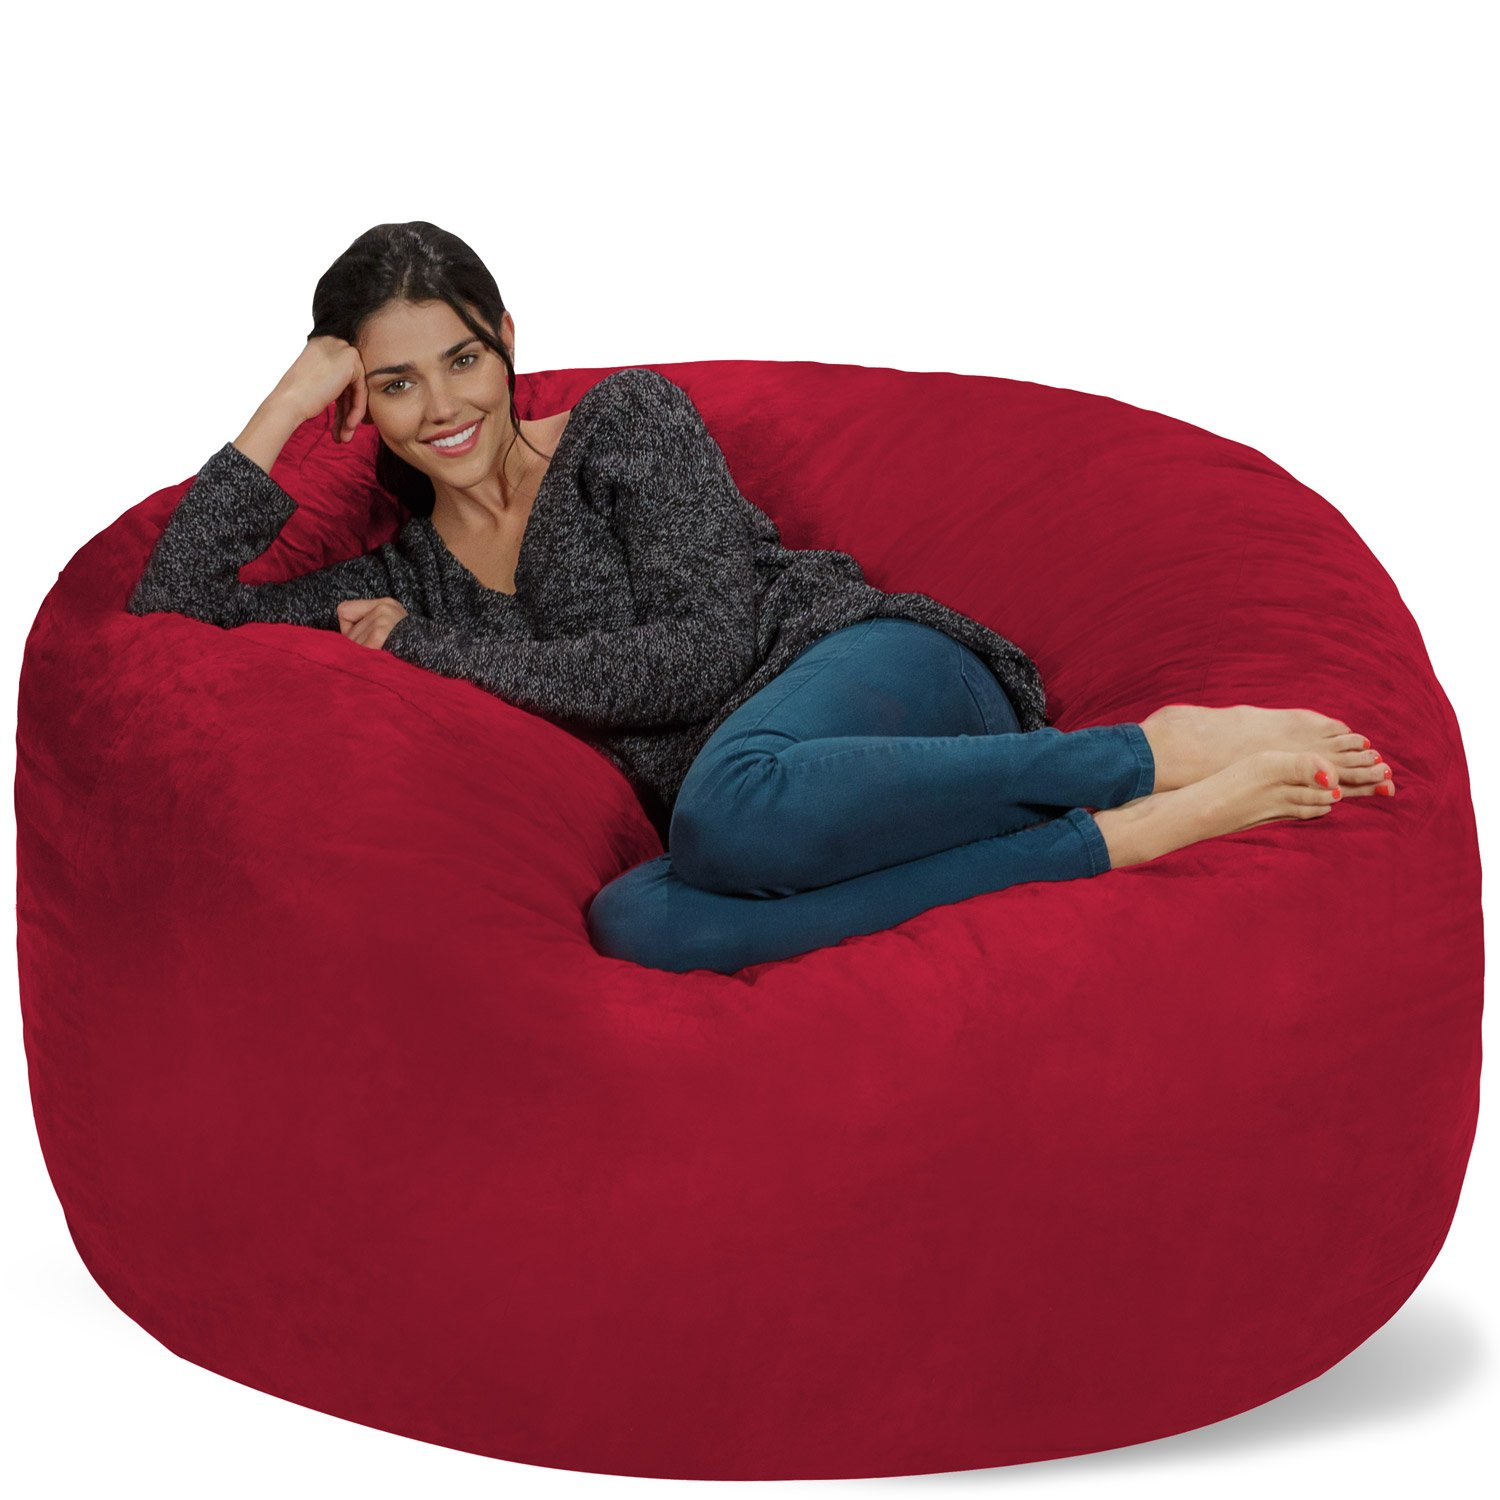 The Best oversized bean bag chair - Our pick